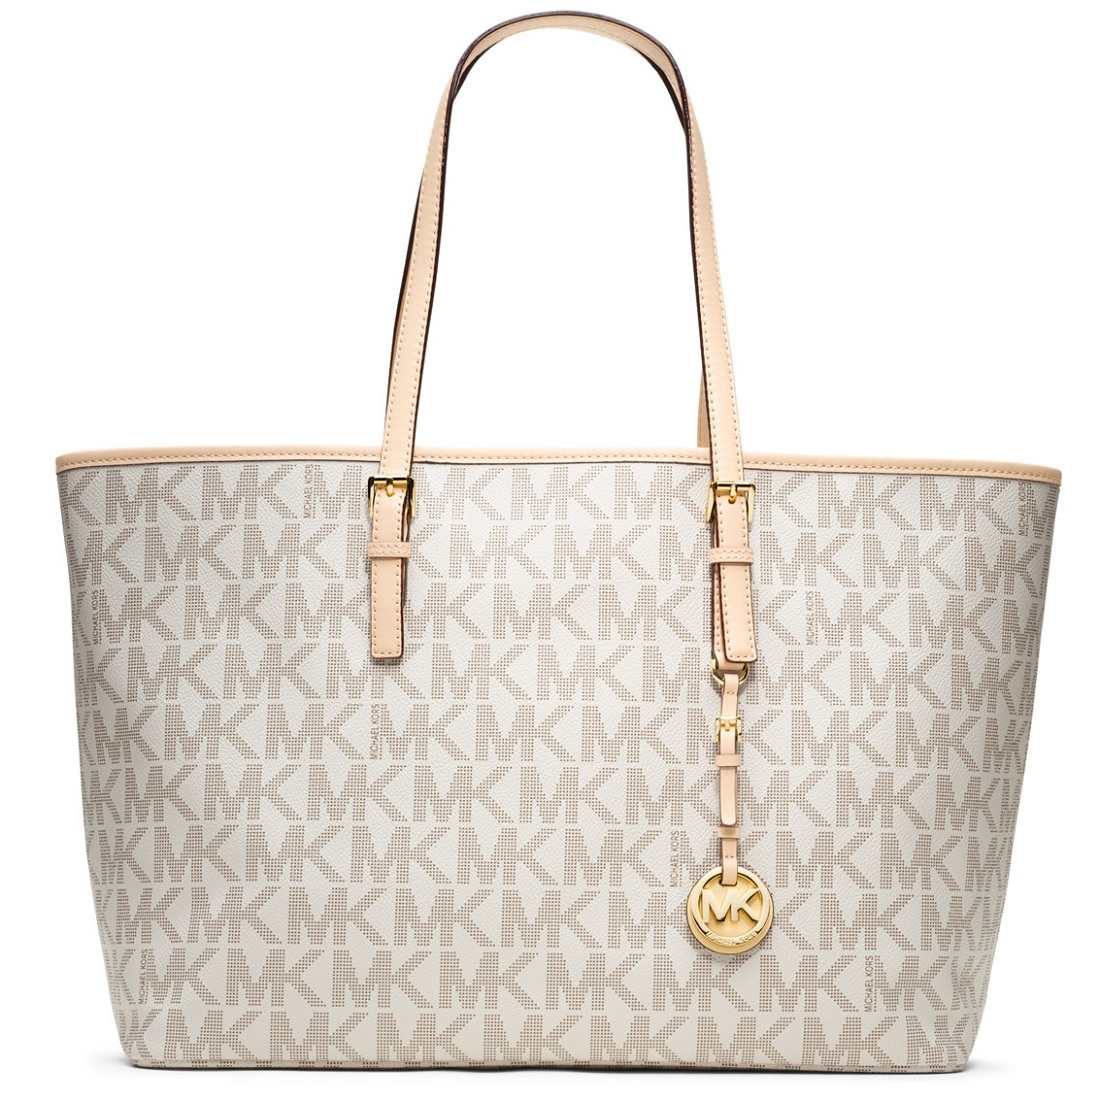 Michael kors tote bags philippines - Picture Of Michael Michael Kors Jet Set Medium Multi Function Travel Tote